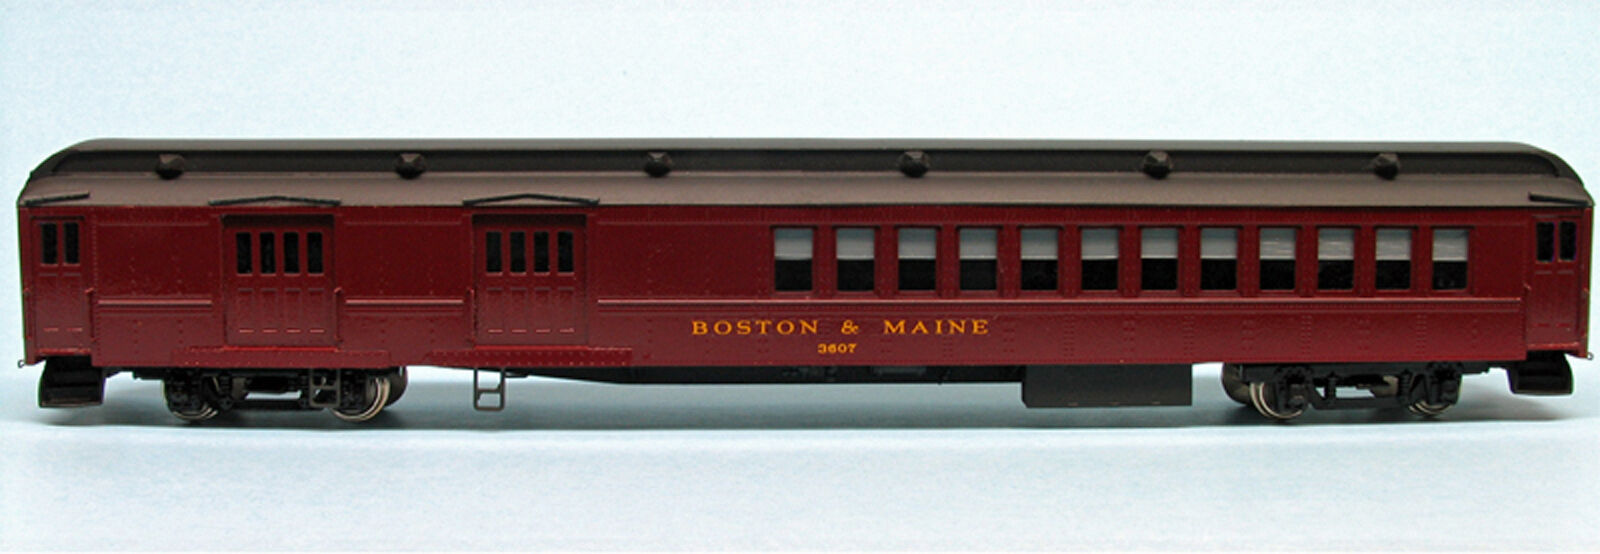 BOSTON & MAINE BAGGAGE - SMOKER 3600-3607 HO Model Railroad Unpainted Kit BC223